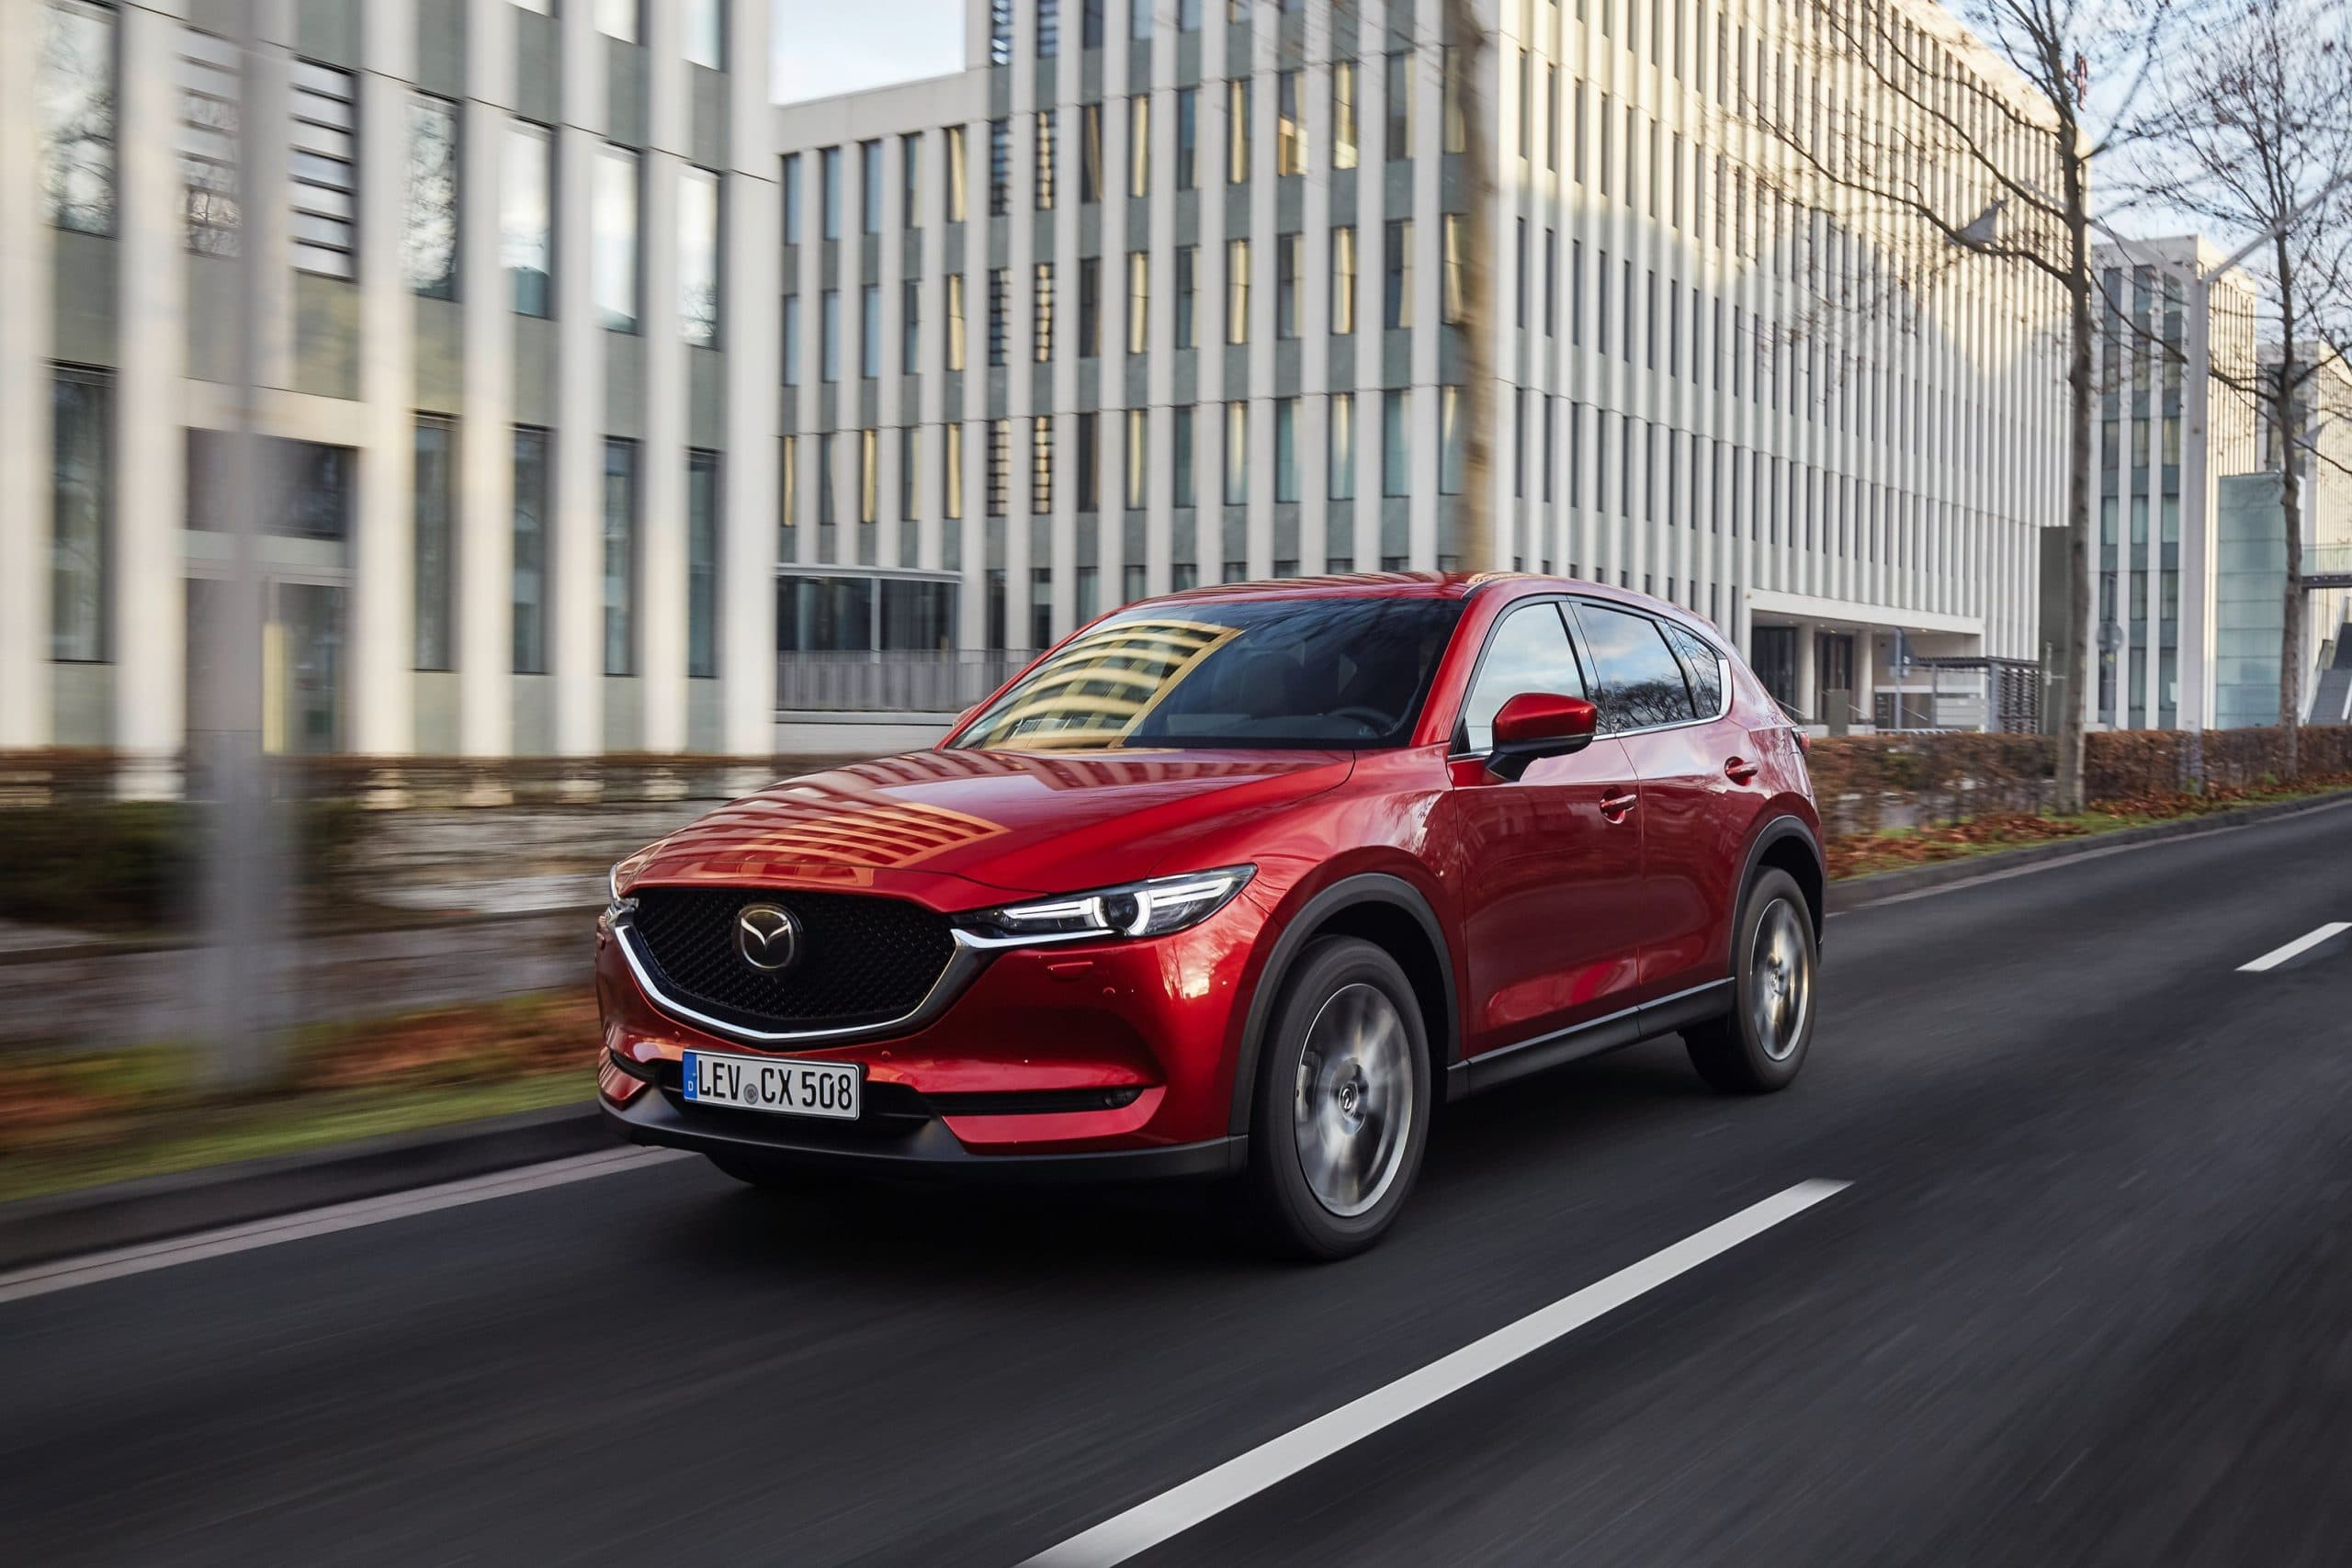 """2021 Mazda CX 5 Soul Red Crystal Action 21 scaled Οι Γερμανοί διαπίστωσαν ότι το Mazda CX-5 """"δε σπάει-δε χαλάει"""""""